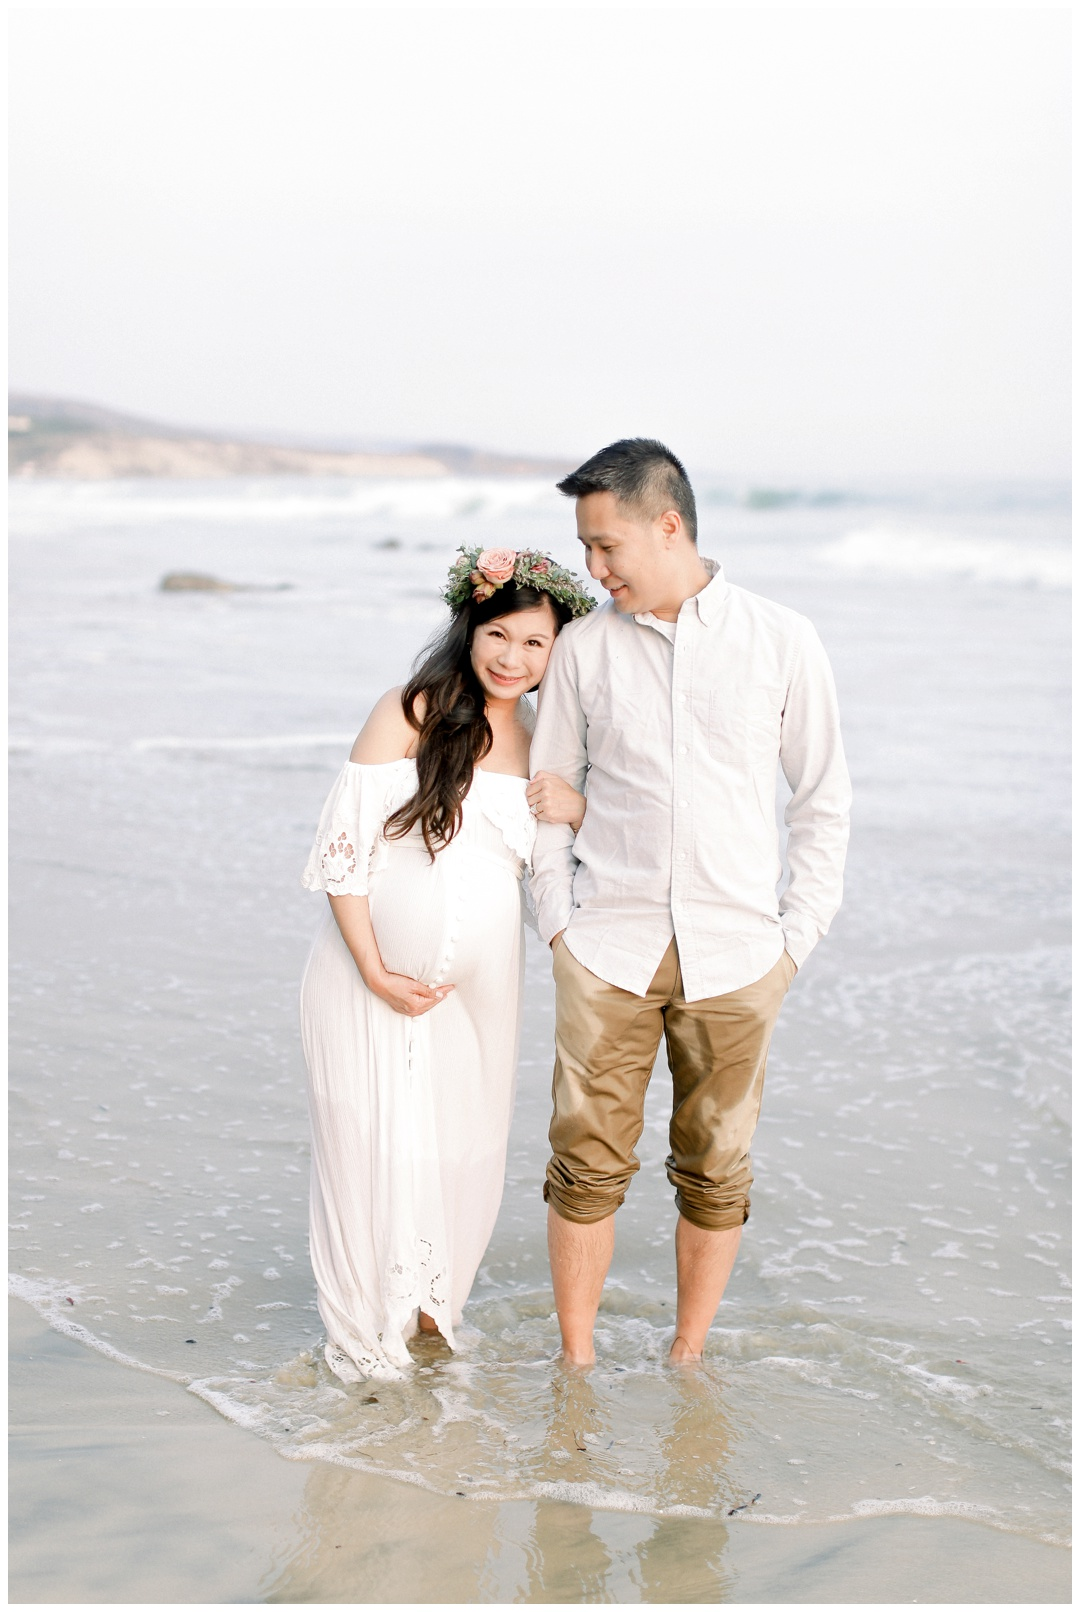 Newport_Beach_Maternity_Photographer_Newport_Beach_Newborn_Photography_Orange_County_Photography_Cori_Kleckner_Photography_Orange_County_Beach_baby_bump_Photography_Kelly_Chao__1891.jpg